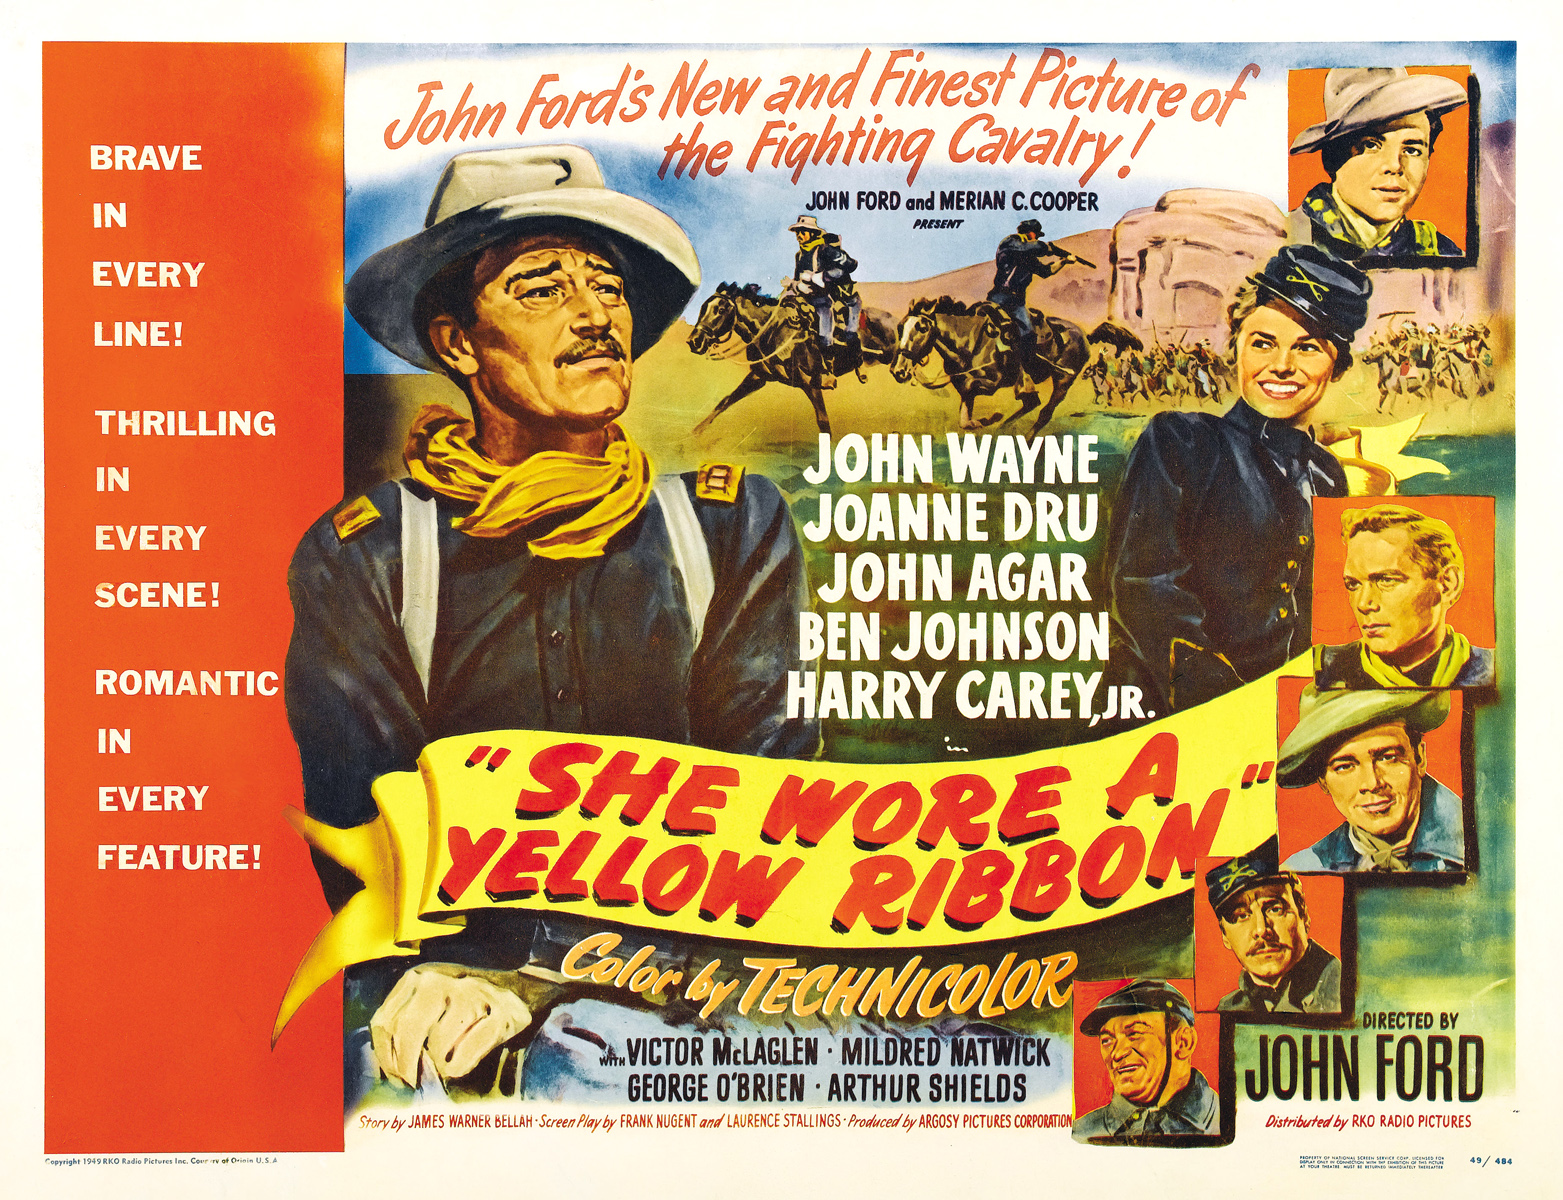 Movies My Dad Likes For Christmas: She Wore a Yellow Ribbon [1949 ...